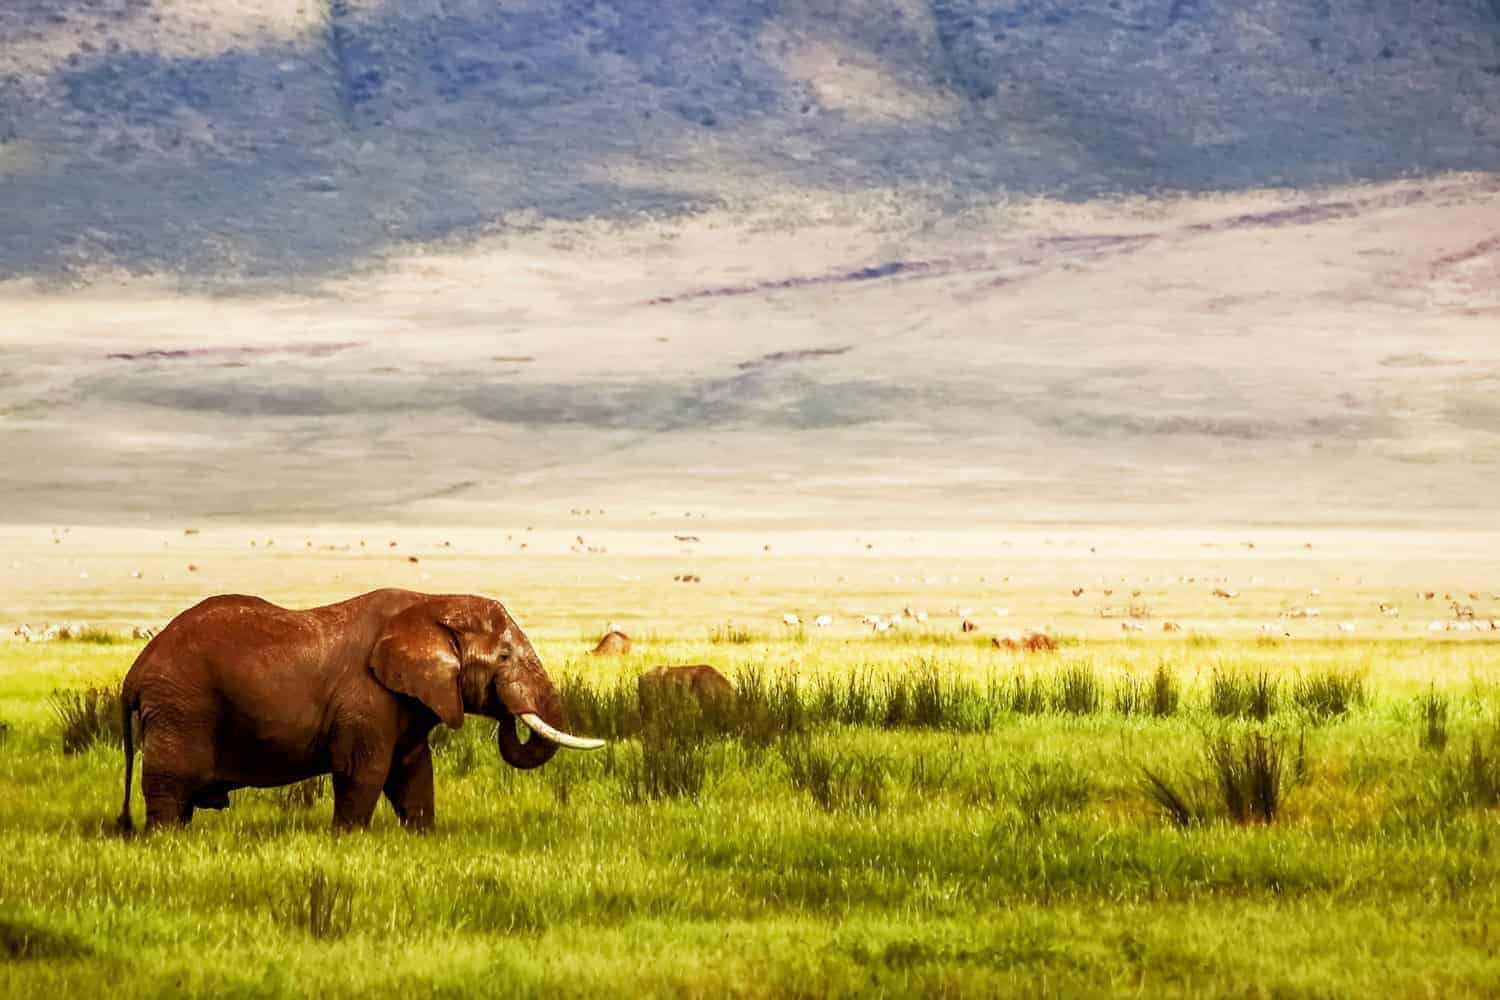 Lonely African elephant in the Ngorongoro Crater in the background of mountains and green grass. Ngorongoro Conservation Area.